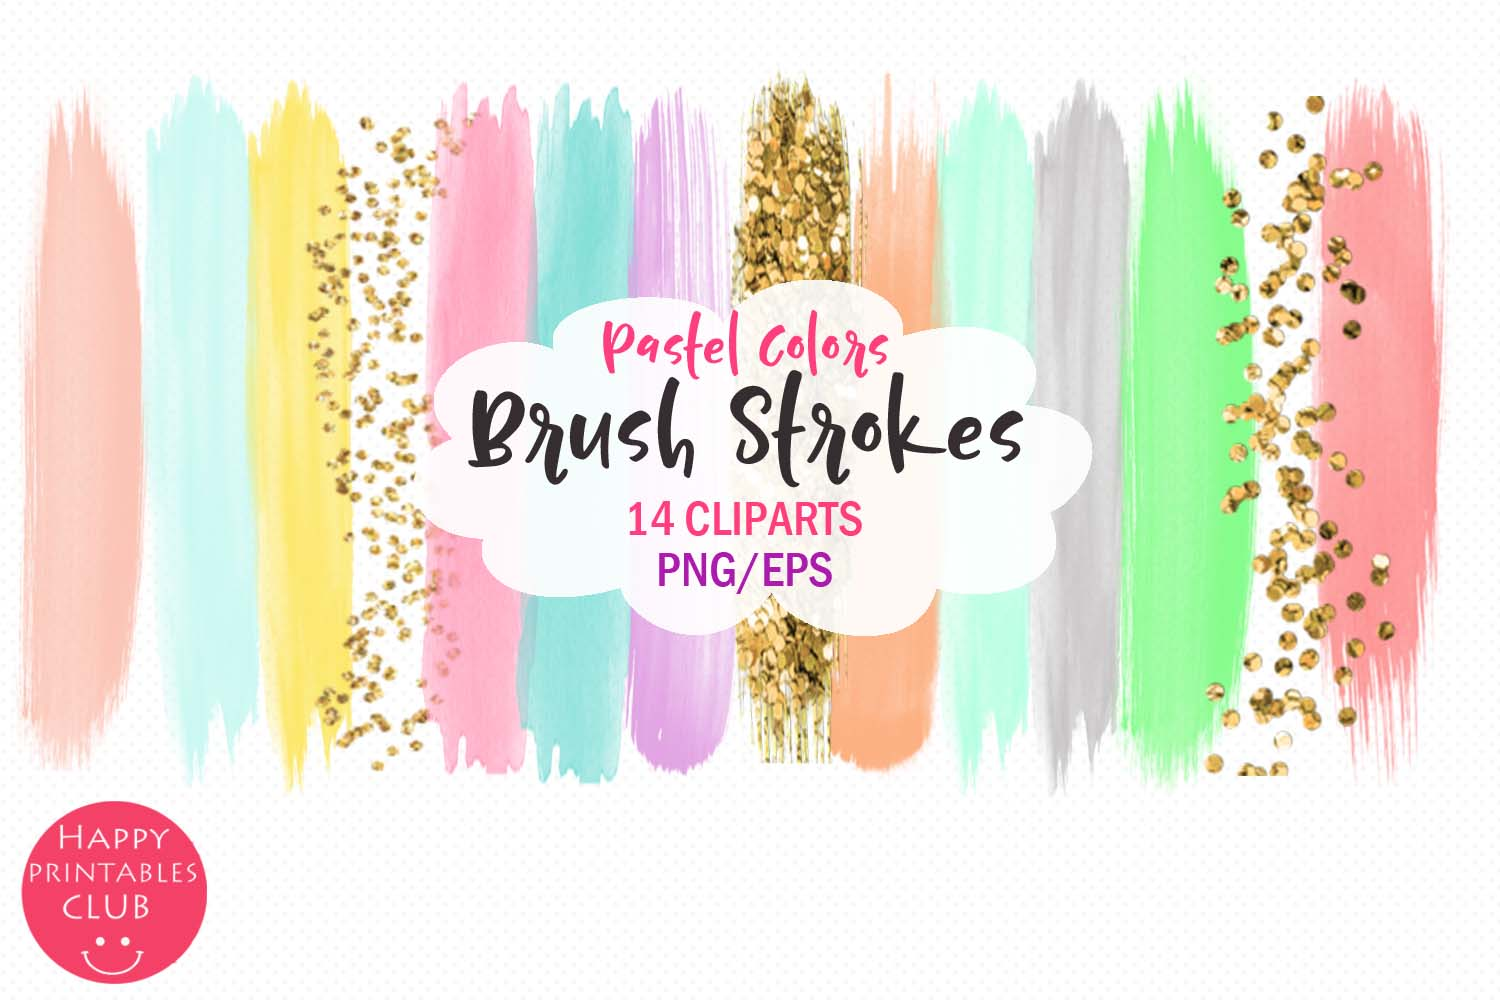 Pastel Colors Brush Strokes- Pastel Brush Strokes Clipart example image 1